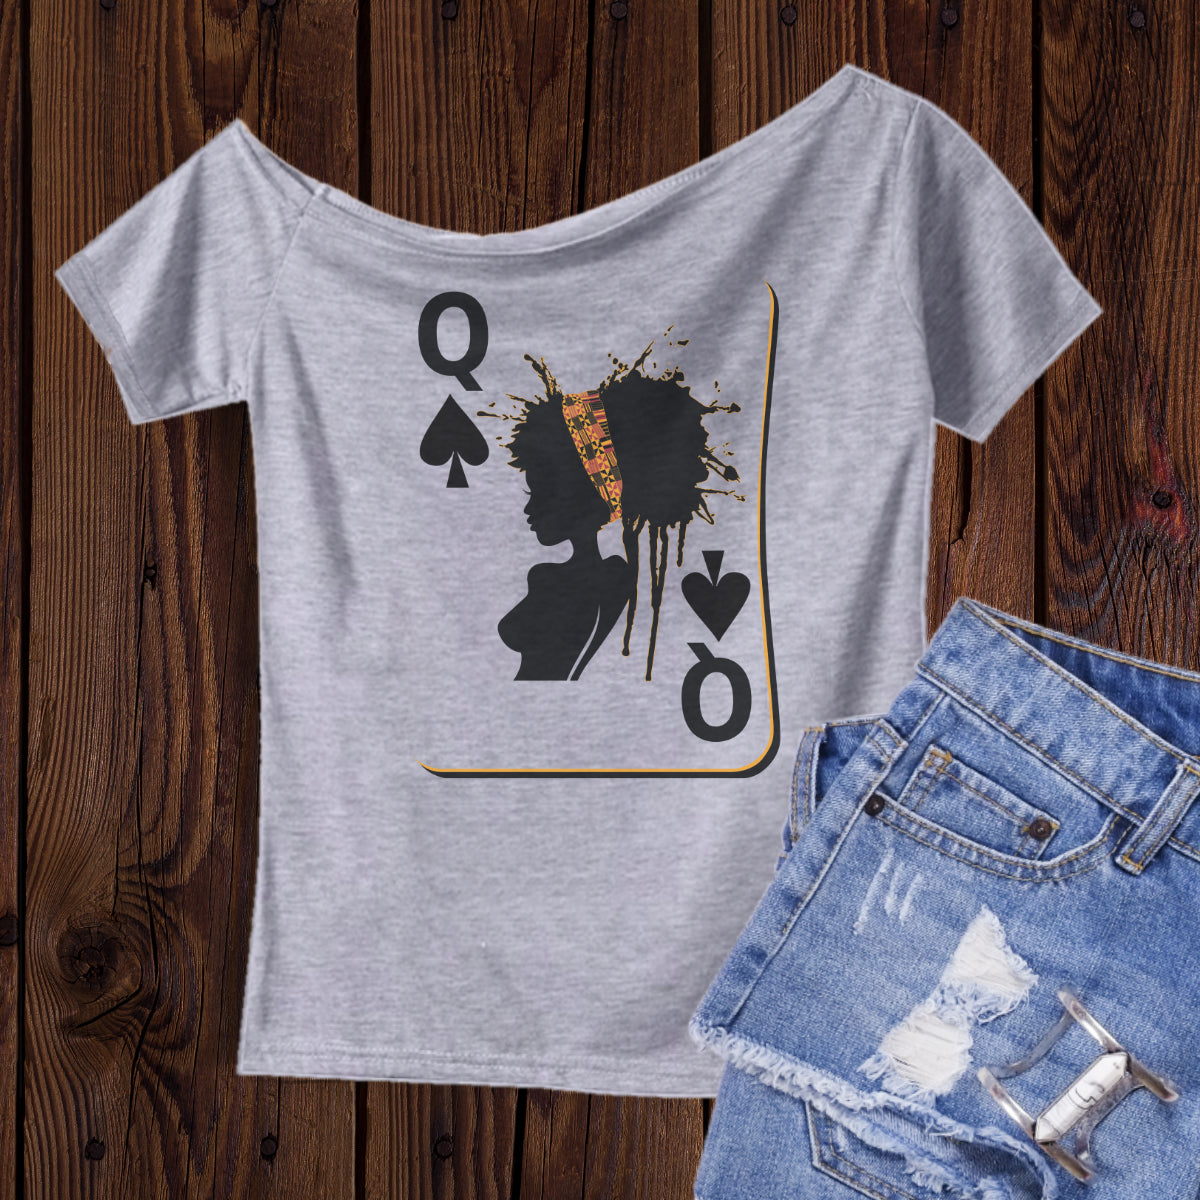 Queen of Spades - Off the shoulder tee